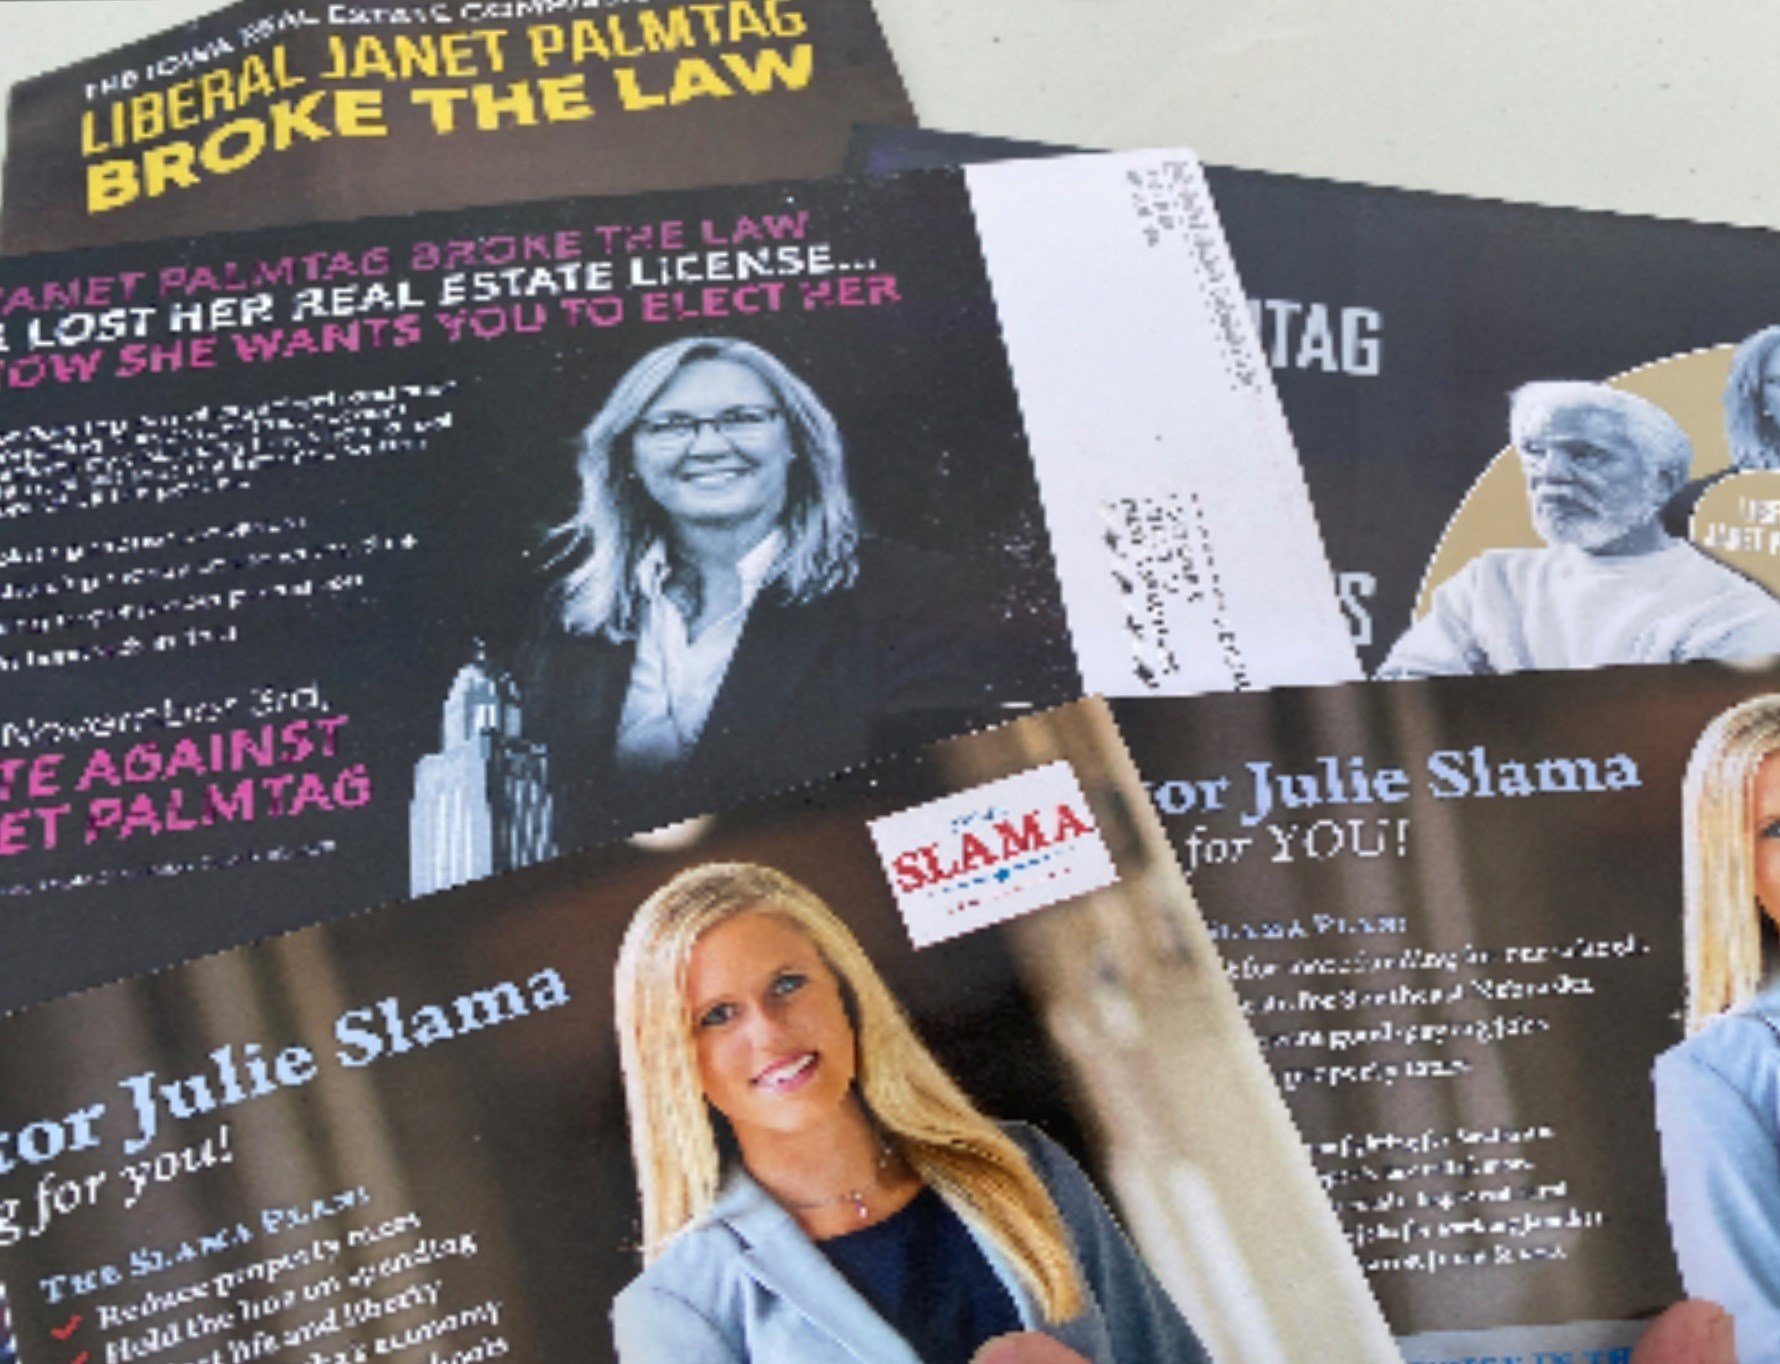 Nebraska GOP answers Palmtag's claims of an attack on her reputation